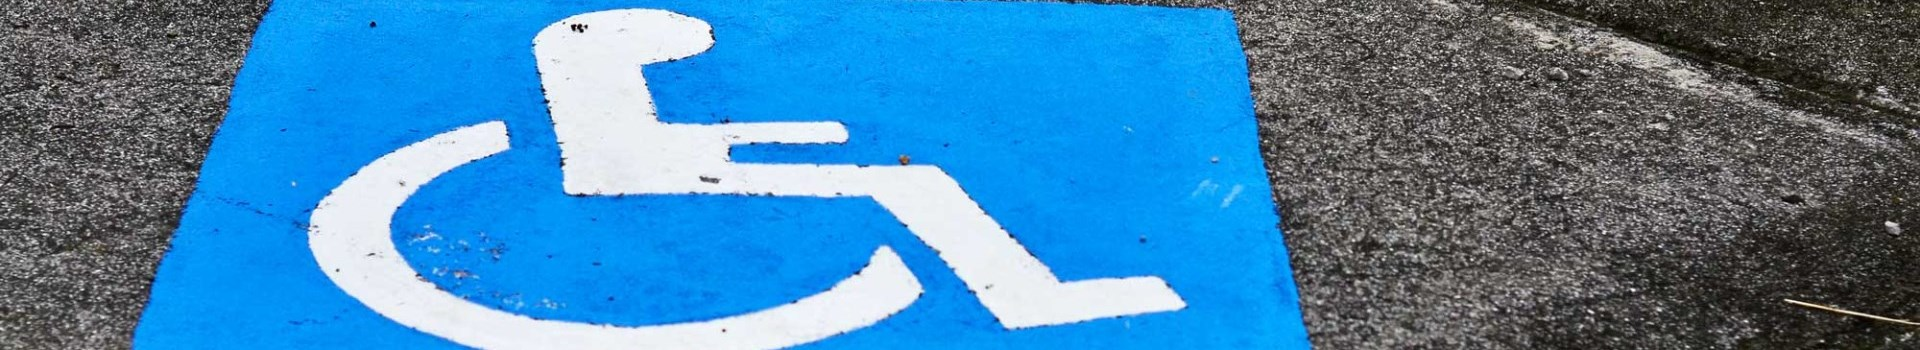 accessibility logo on parking spot